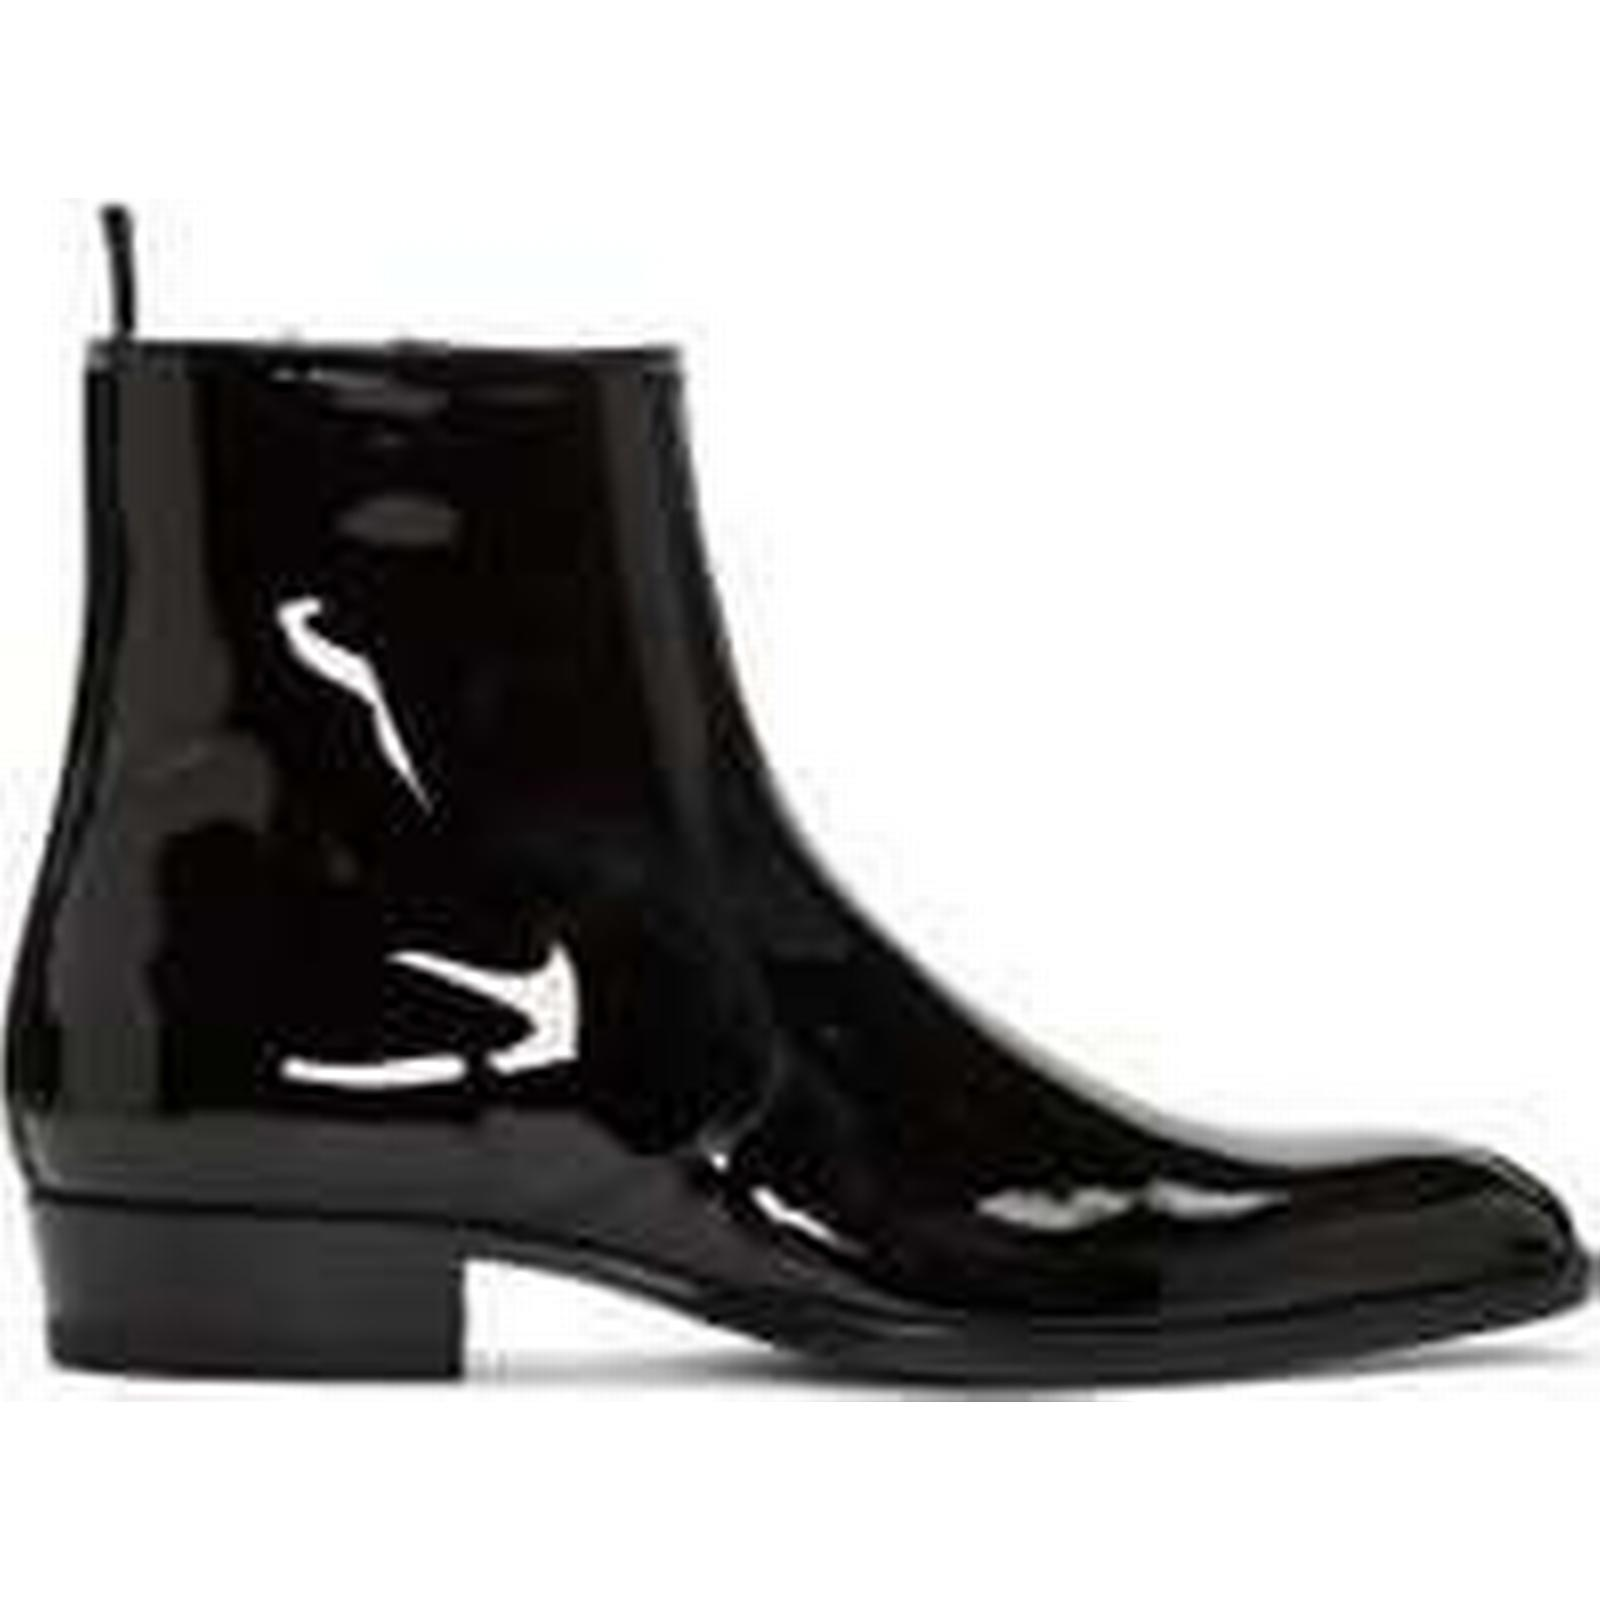 Bonanza Black (Global) Handmade Men Fashion Black Bonanza Patent Leather Boots, Men Side Zipper Ankle Boot e5f629